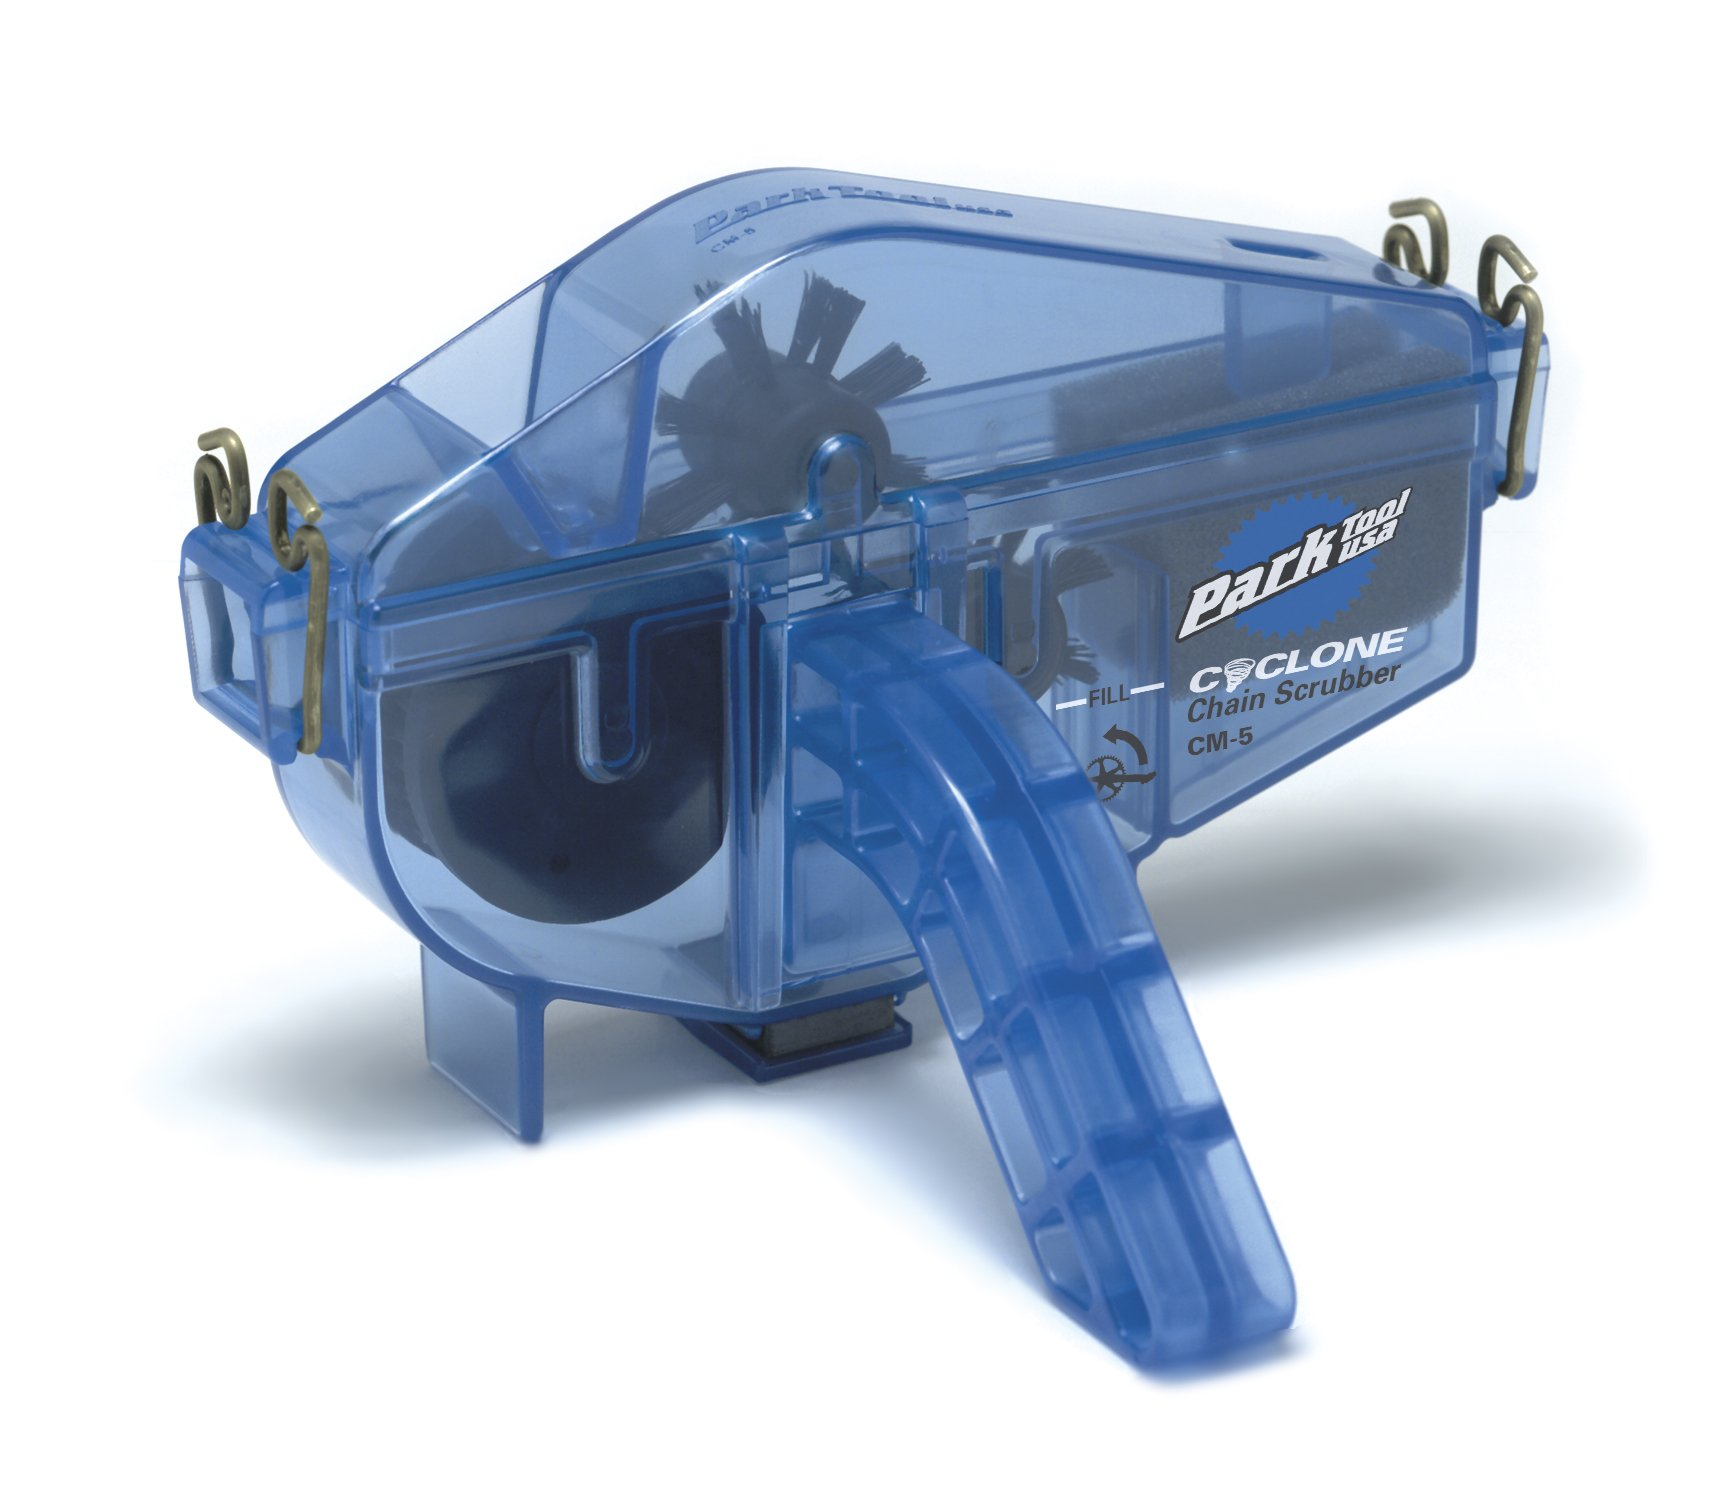 Park Tool CM 5 2 Cyclone Cleaner